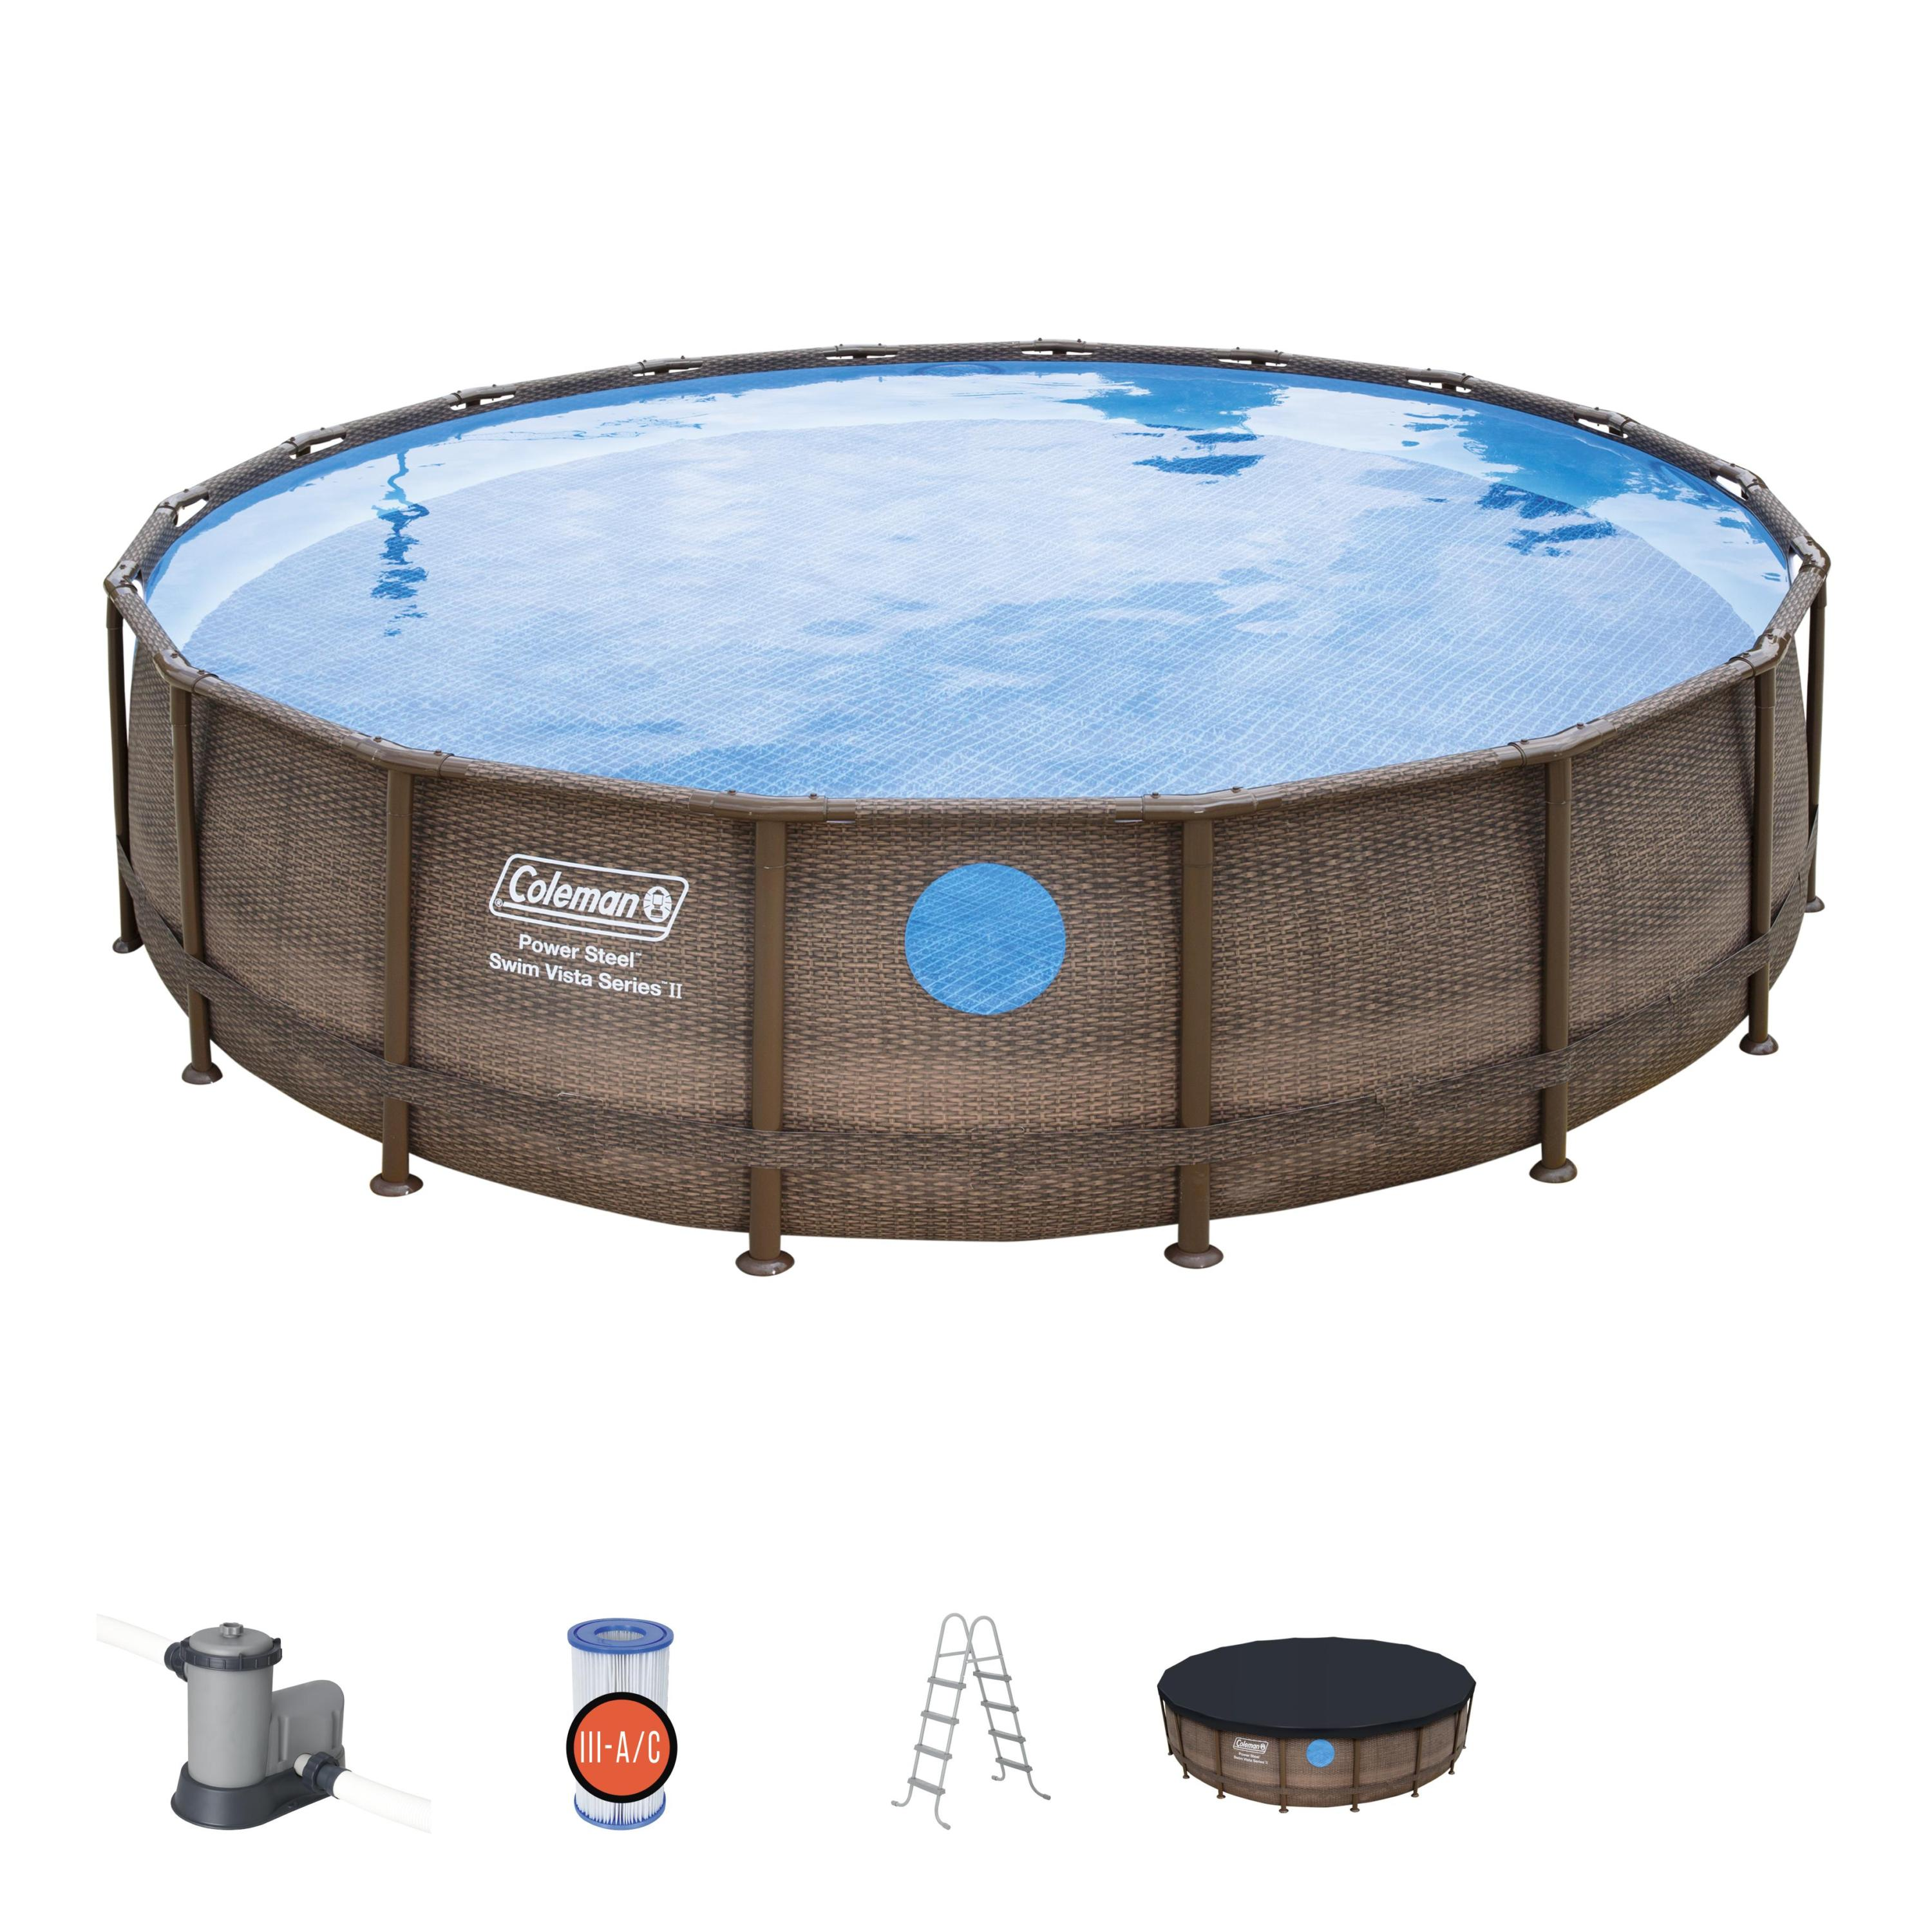 Coleman 18 X 48 Power Steel Swim Vista Series Ii Swimming Pool Set Walmart Com Walmart Com